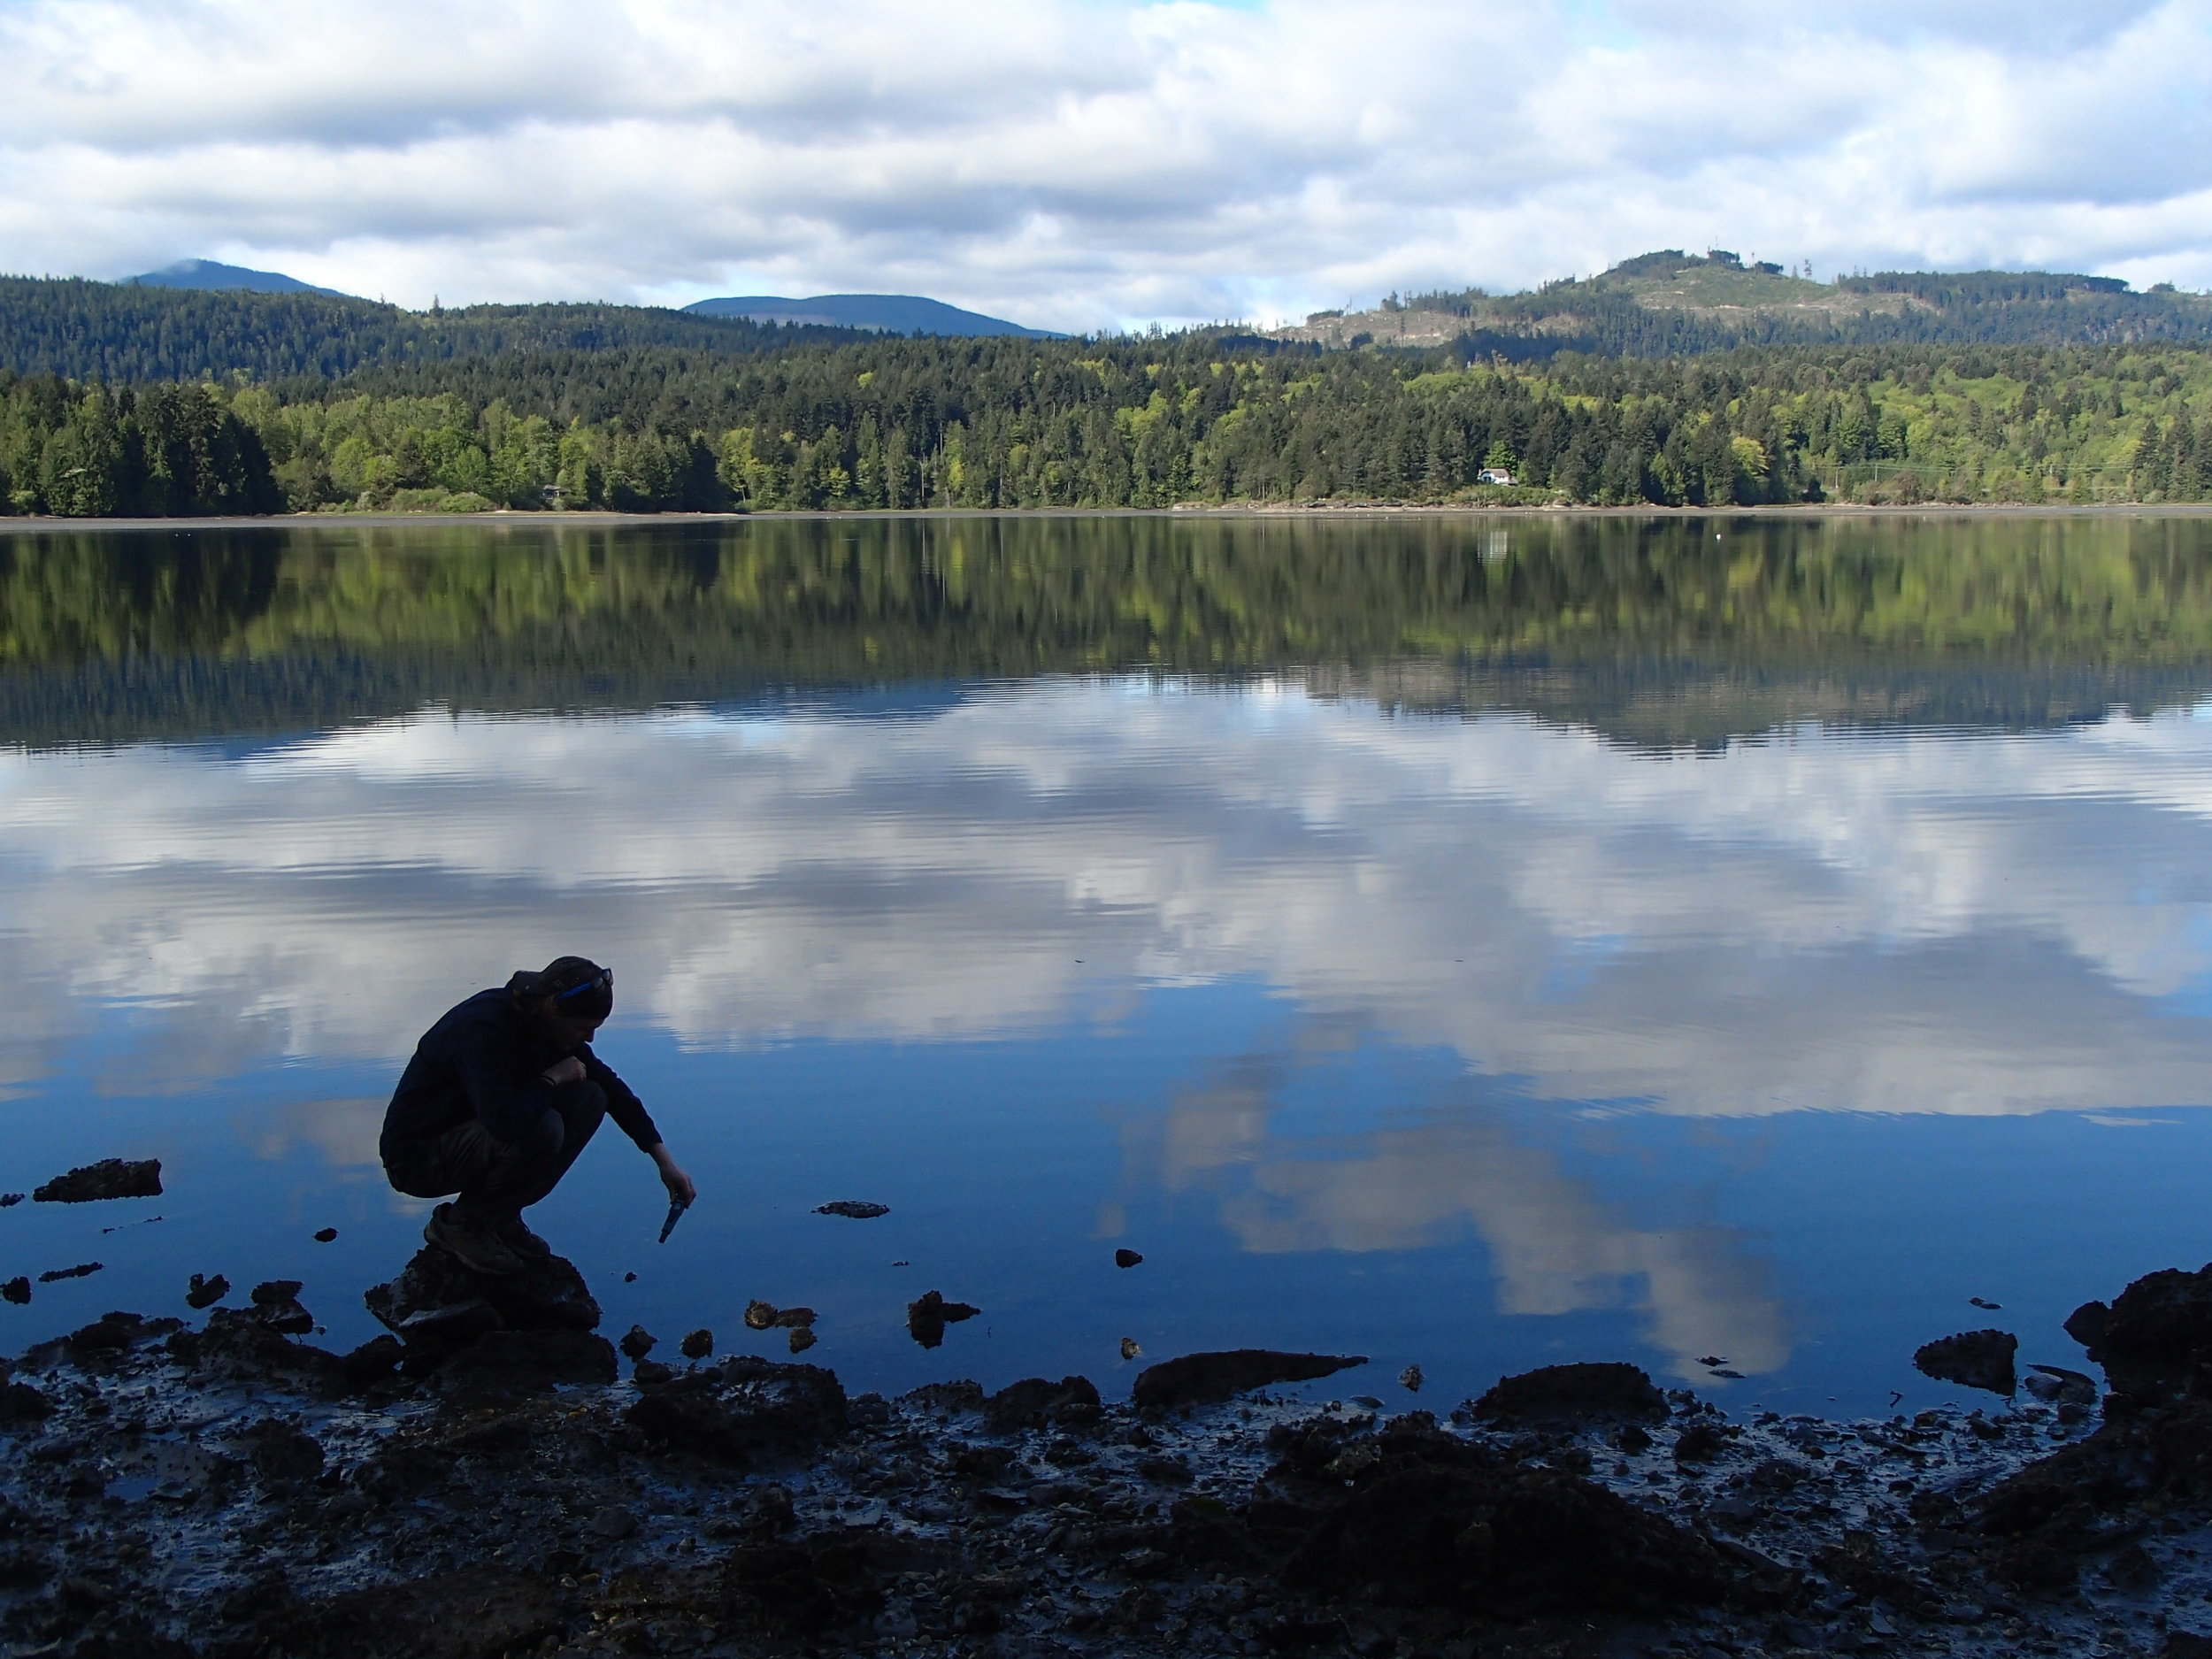 Taking water measurements in an inlet in British Columbia, Canada (photo credit: Aneesh Bose)